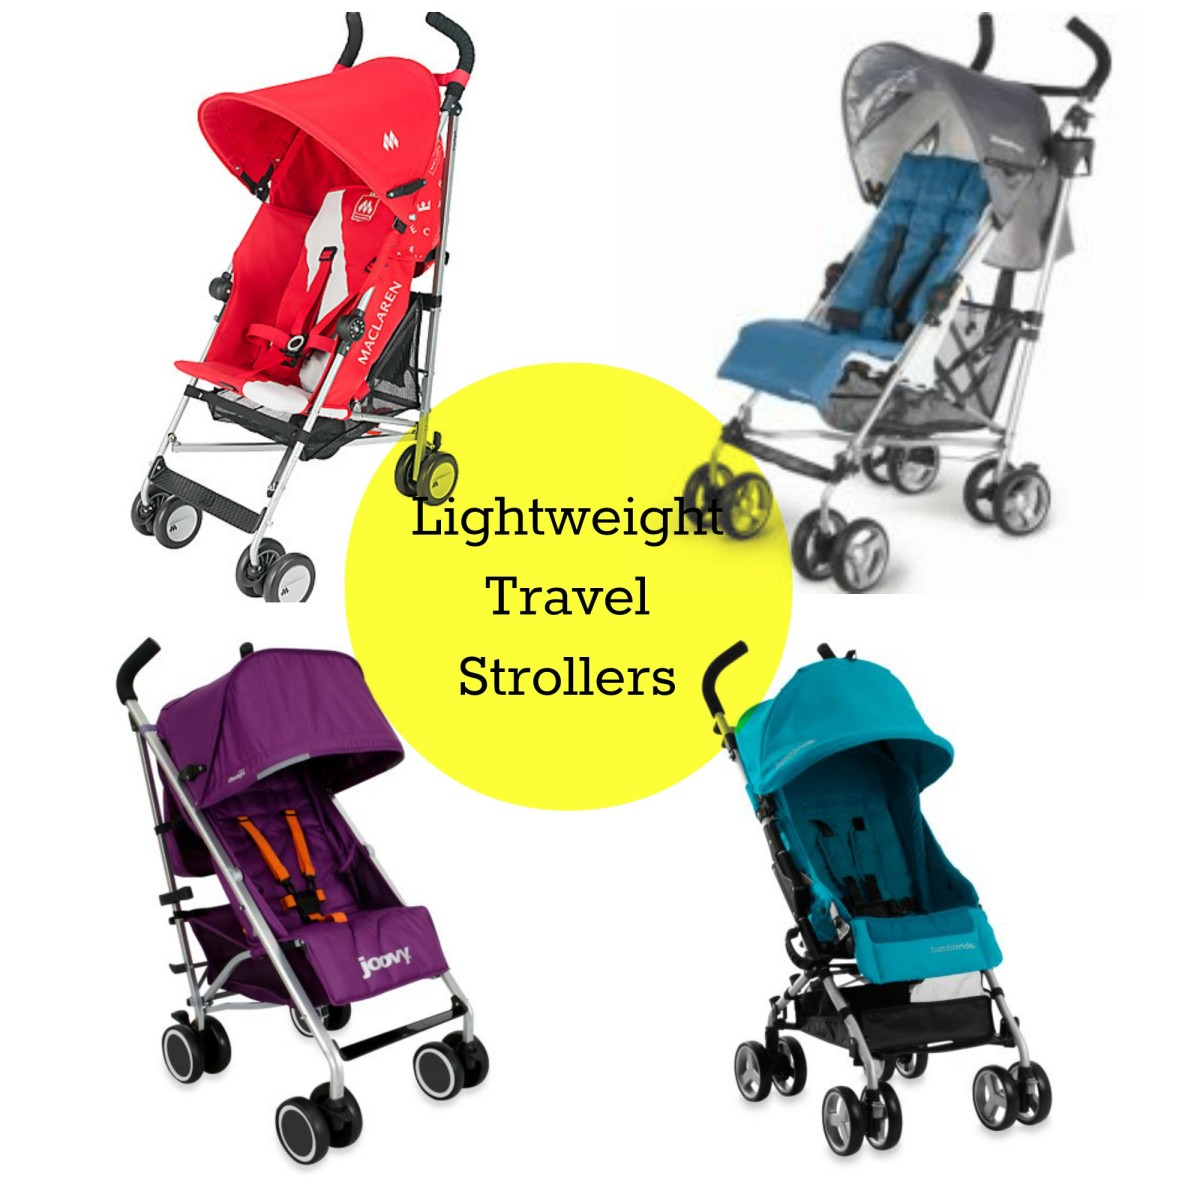 Lightweight Strollers For Travel - MomTrendsMomTrends